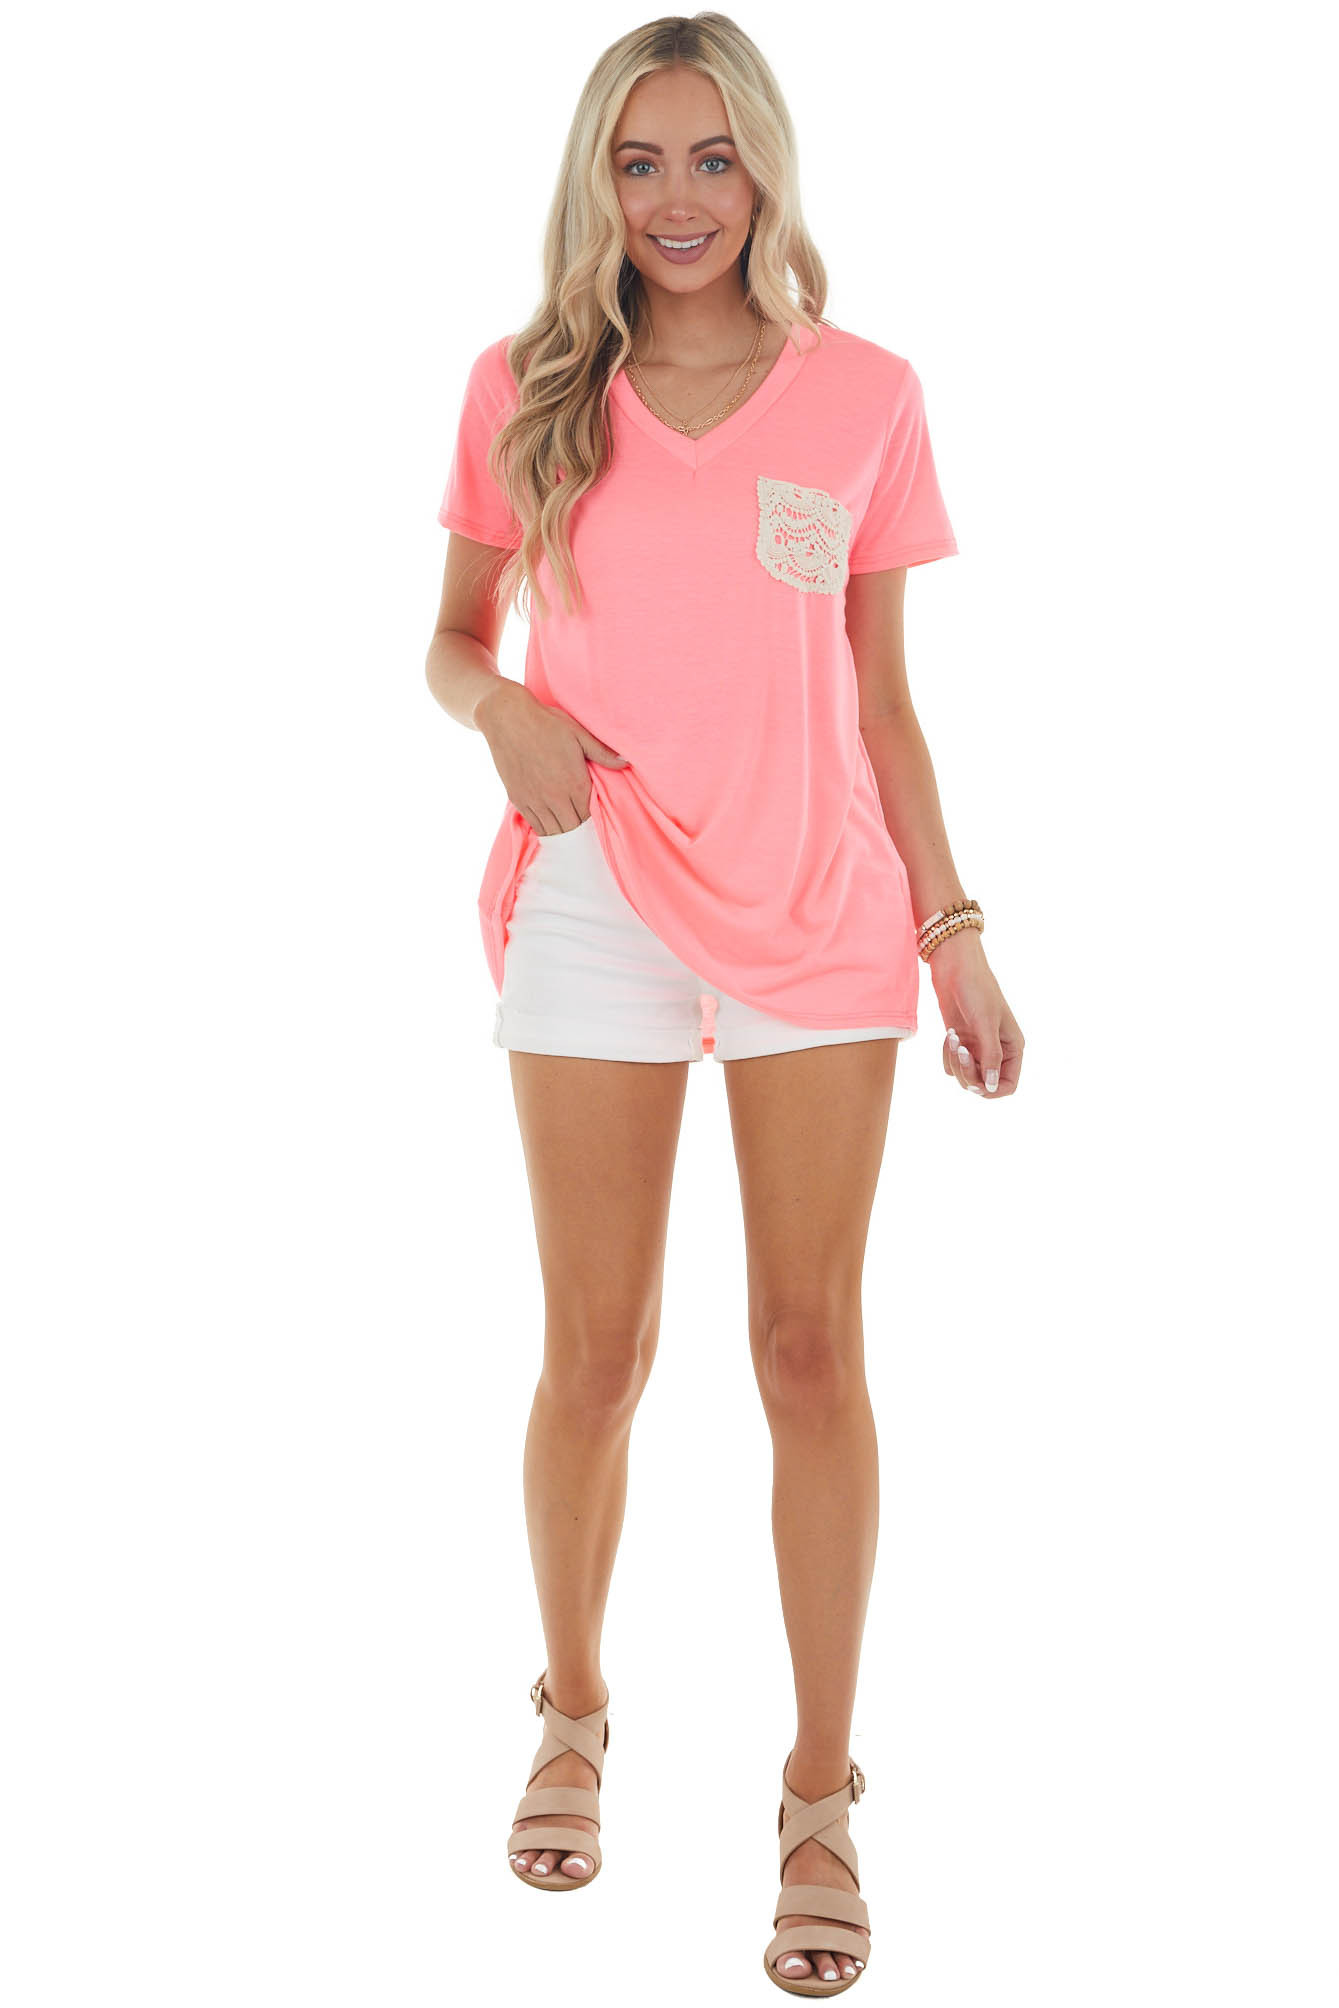 Neon Pink V Neck Tee with Chest Lace Pocket